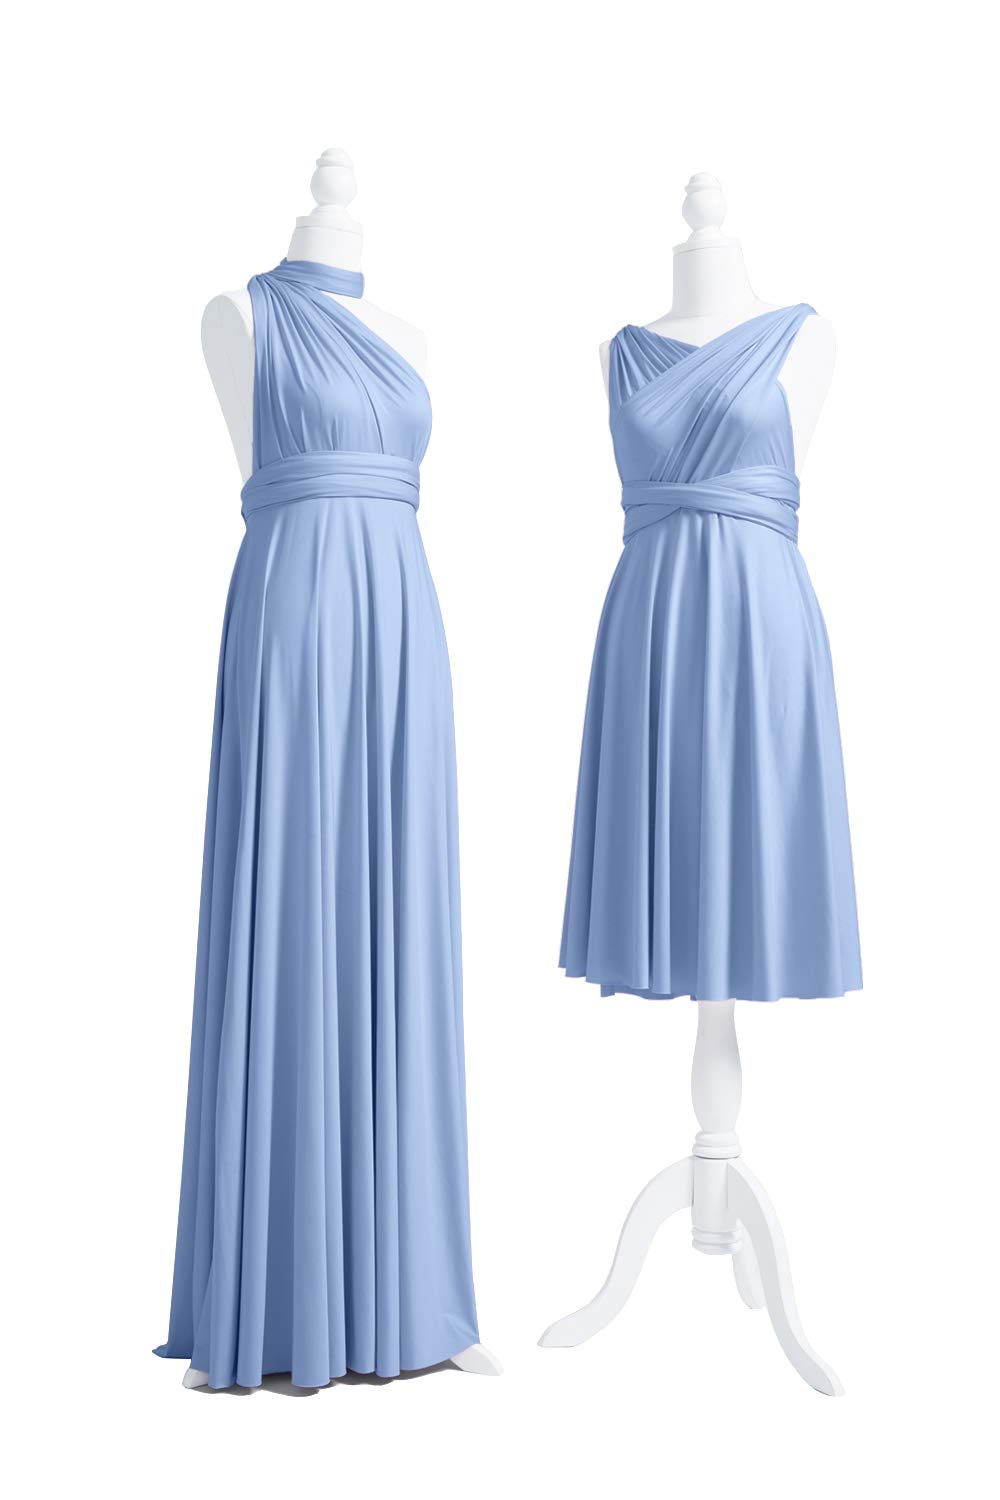 72STYLES Dusty Blue Infinity Dress with Bandeau, Convertible Dress,  Bridesmaid Dress, Long,Short, Plus Size, Multi-Way Dress, Twist Wrap Dress